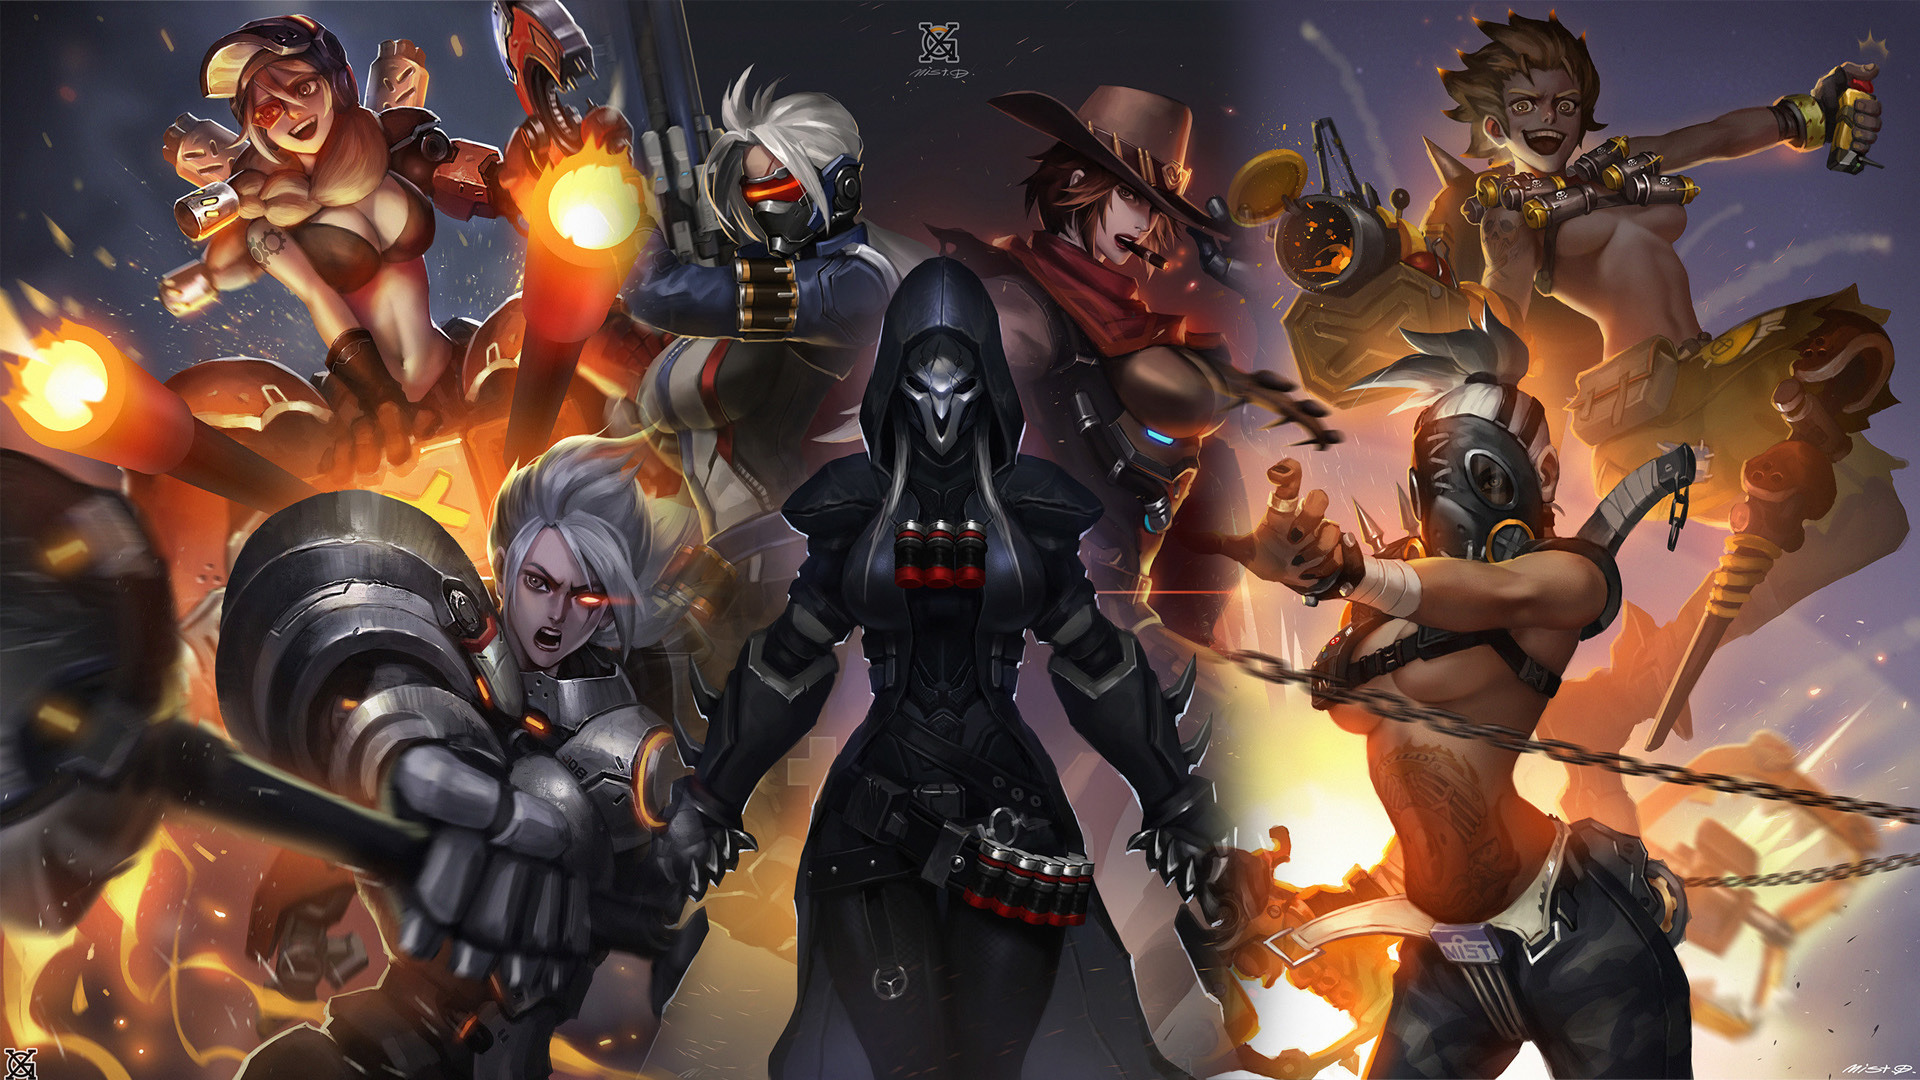 Download 1920x1080 wallpaper overwatch girl warriors all full hd hdtv fhd 1080p 1920x1080 - 1366x768 is 720p or 1080p ...